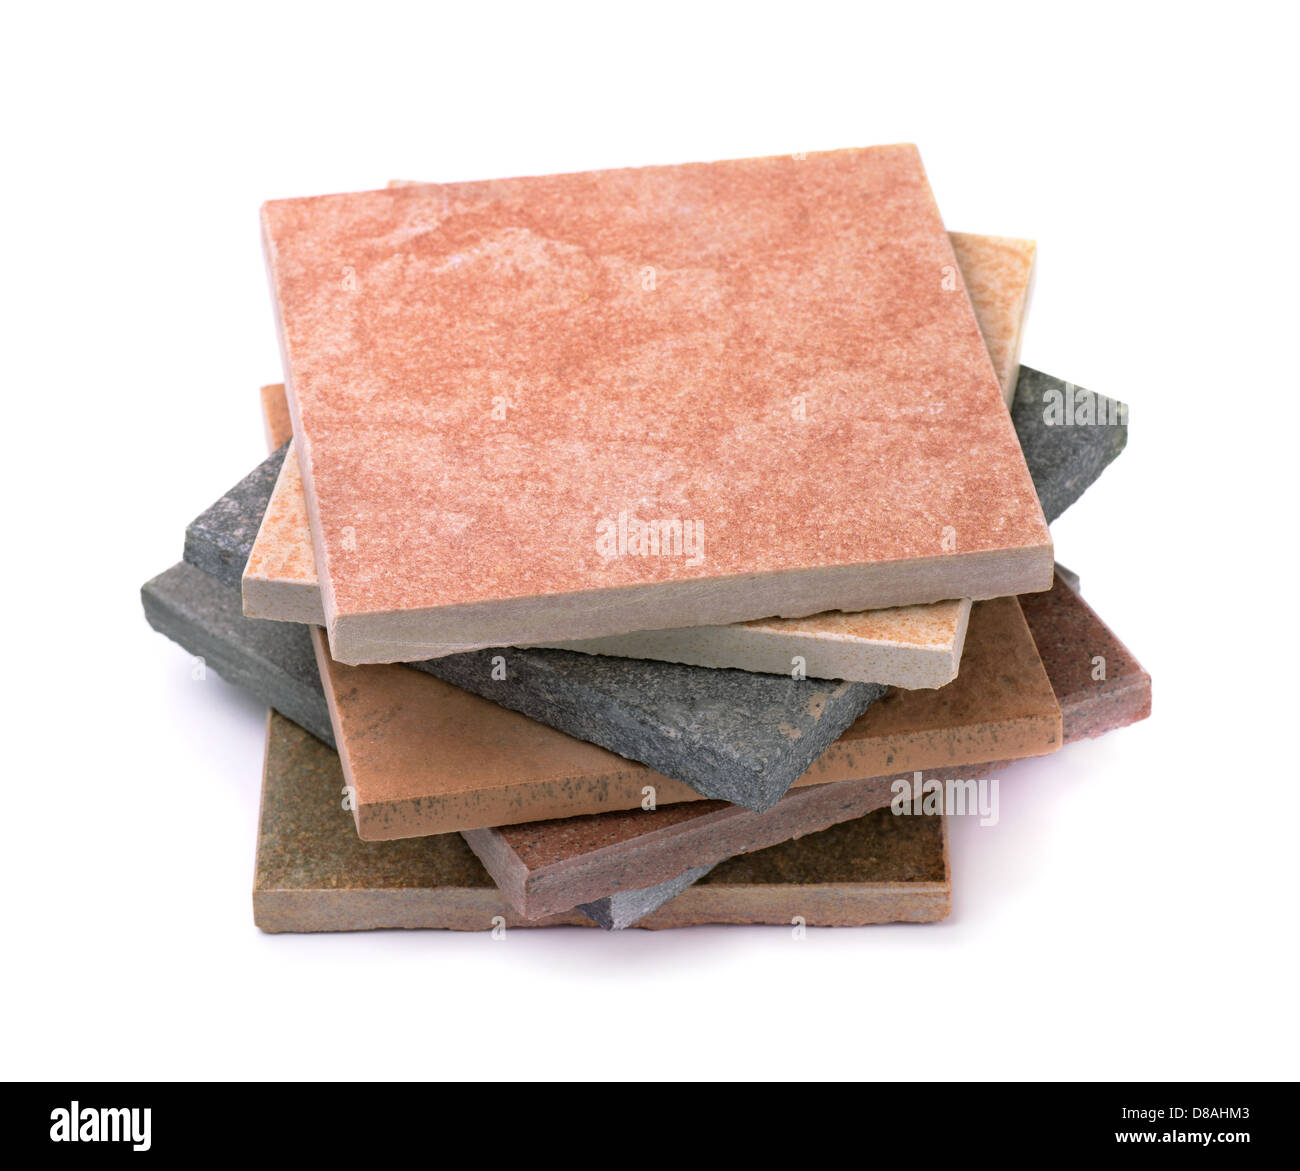 Stack of various stone tiles isolated on white - Stock Image